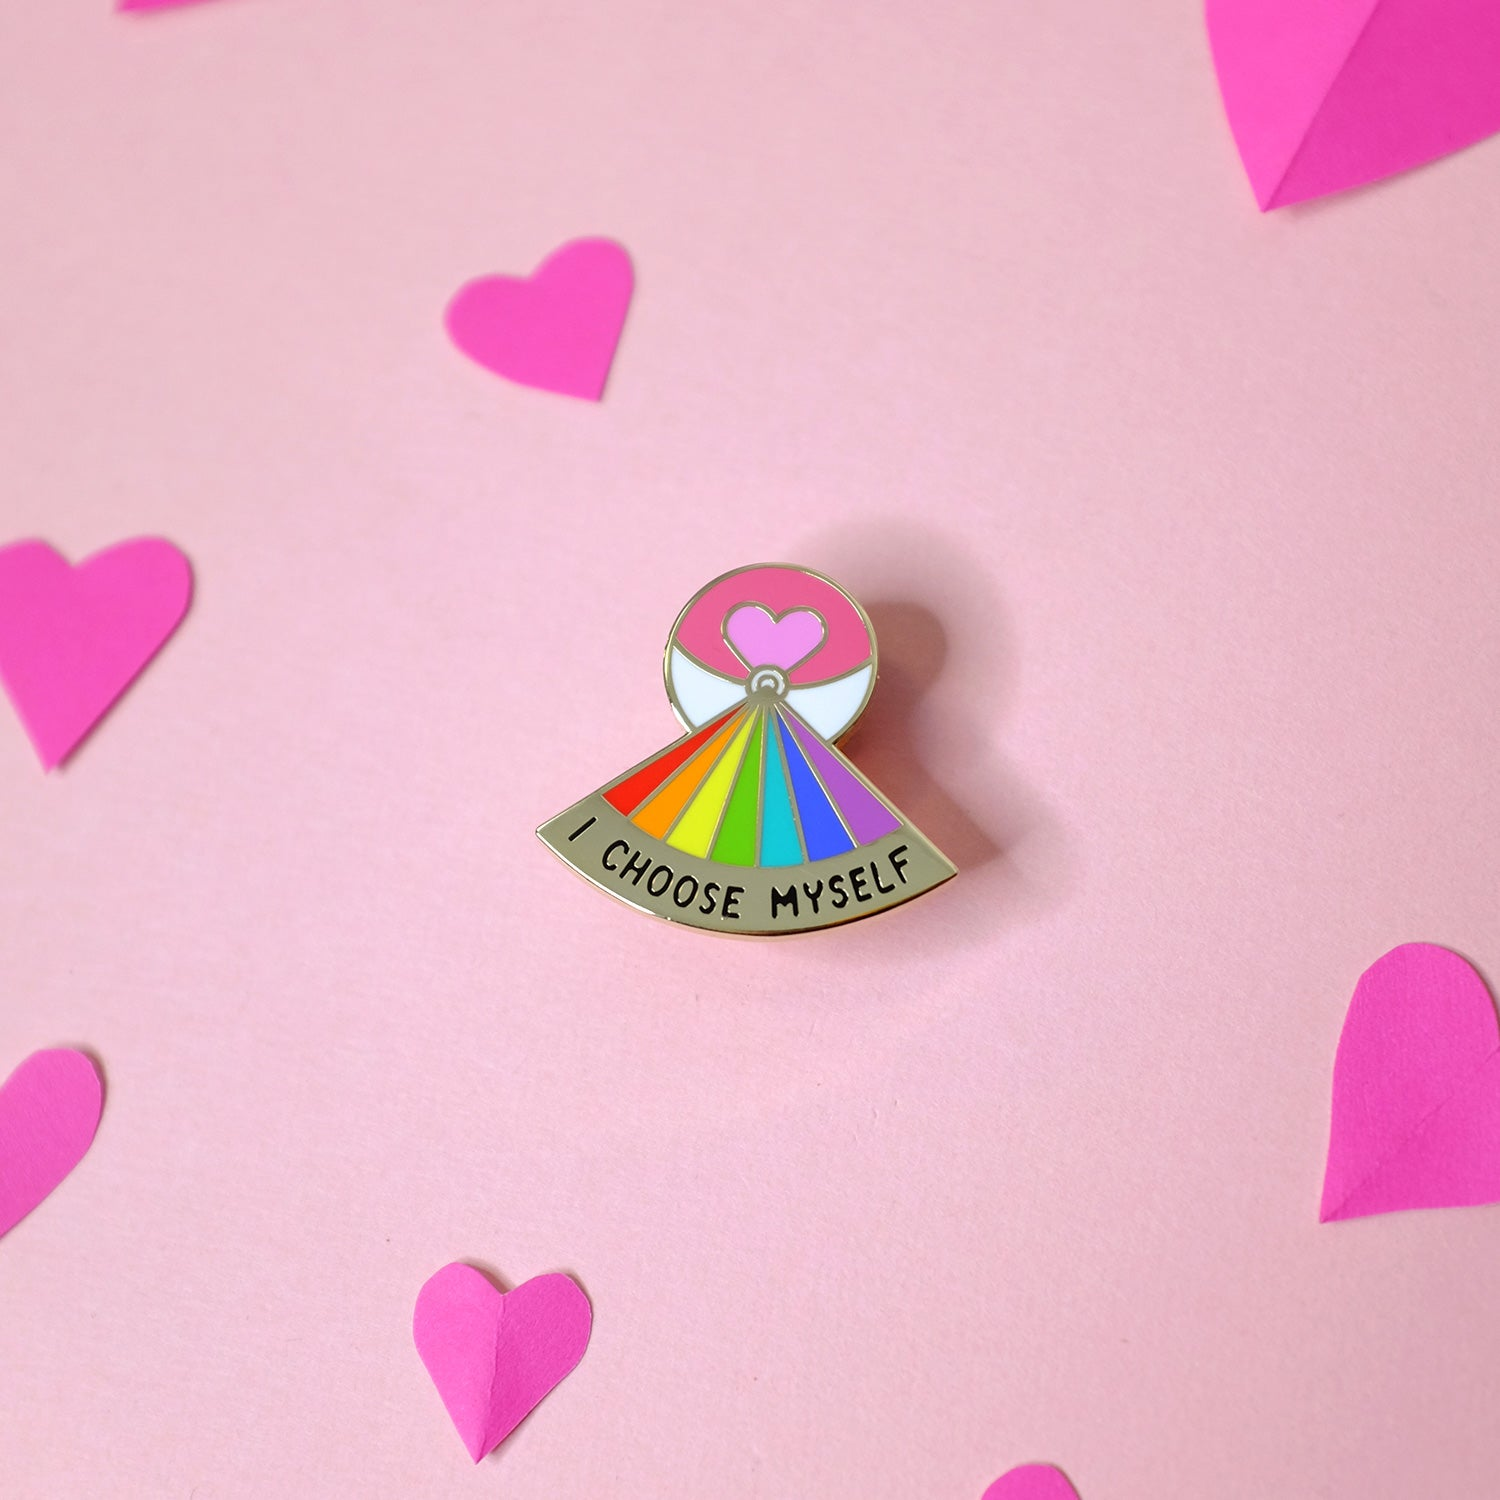 I Choose Myself Loveball Self Care Pin